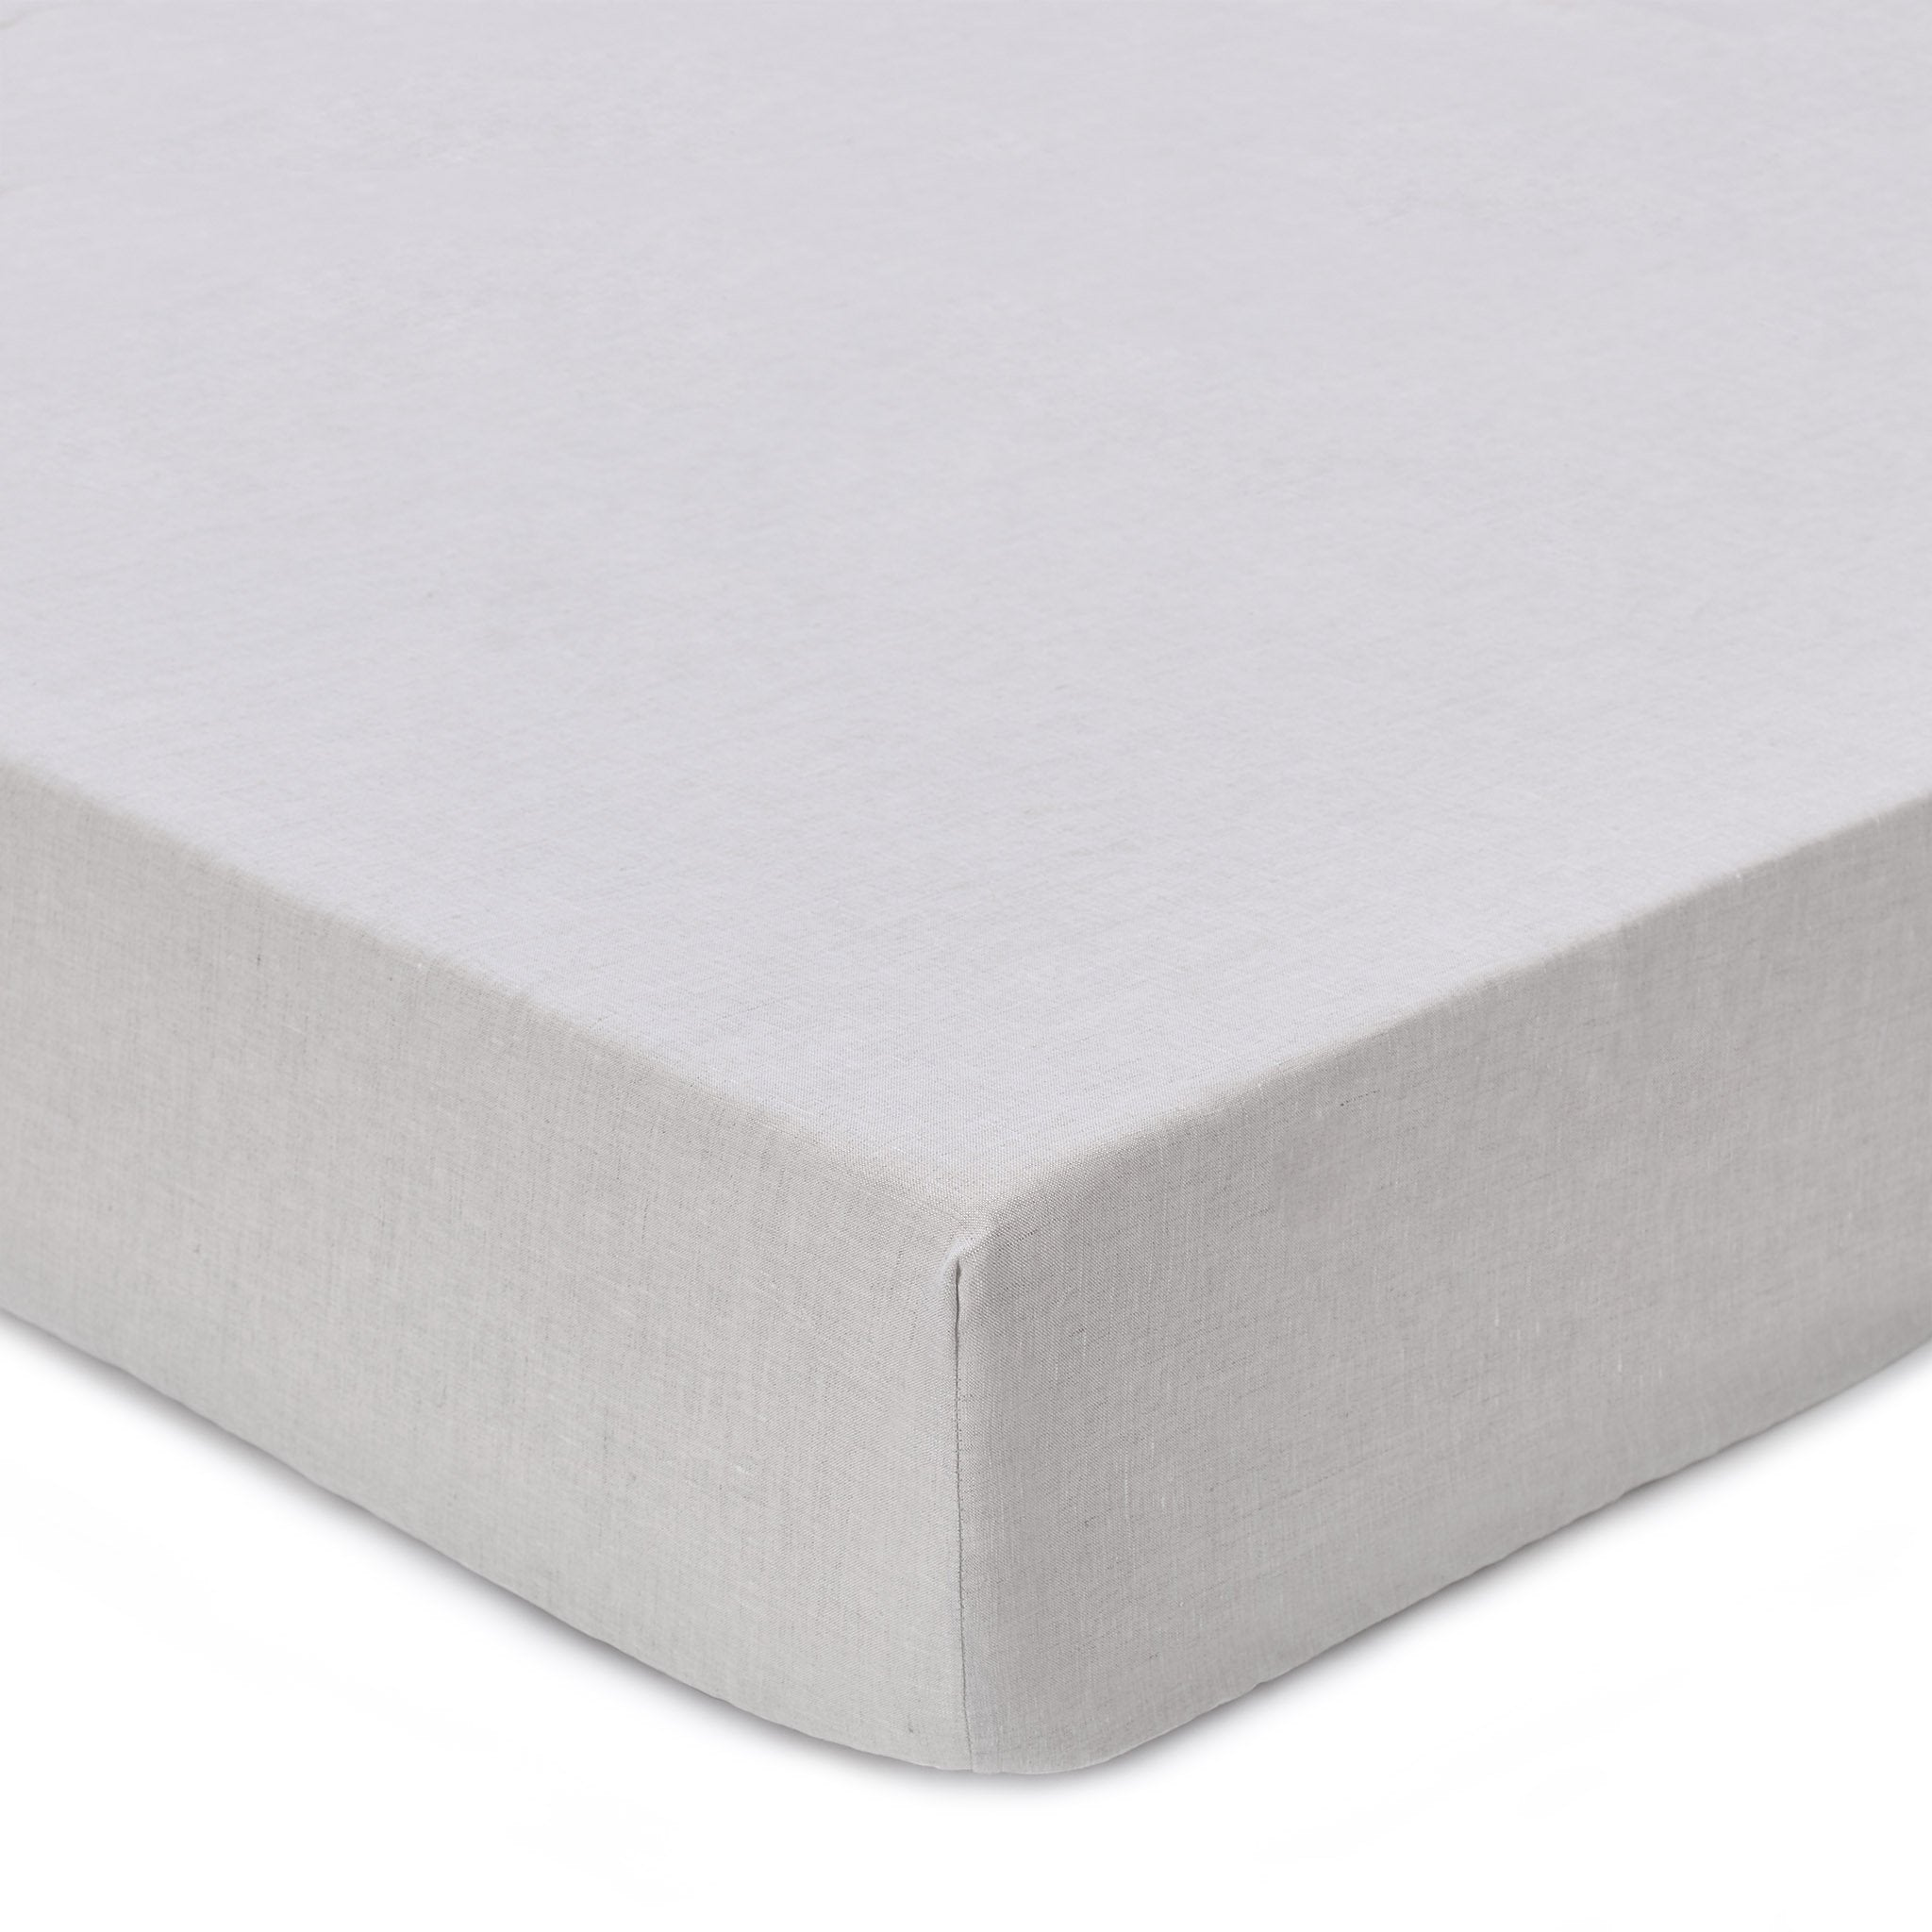 Toulon Fitted Sheet natural, 100% linen